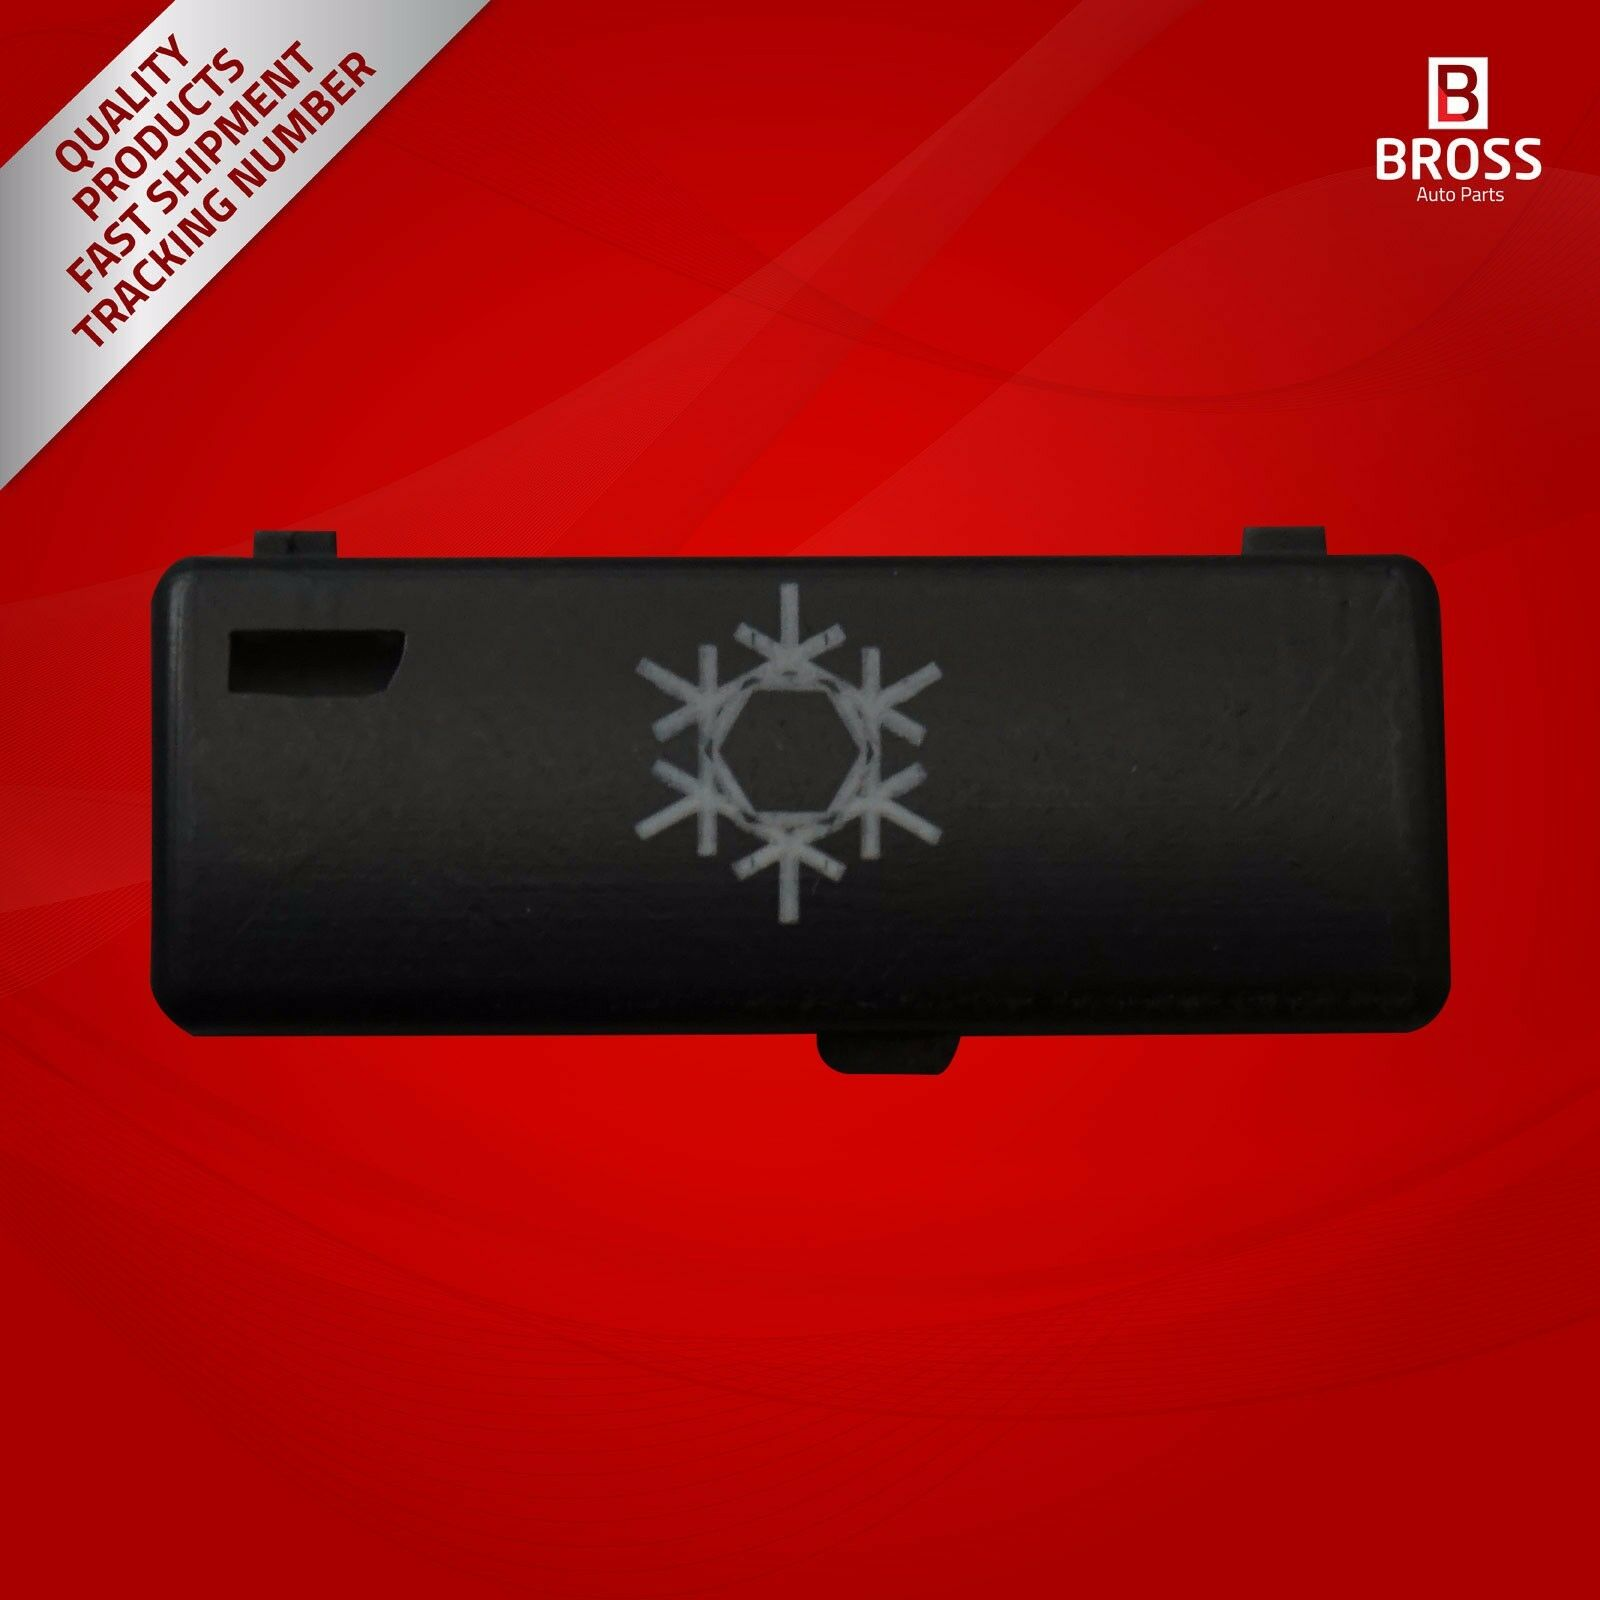 BDP88-8 1 Piece Heater Climate Control Air Conditioning Switch Button Cover #8 For 5 Series X5 E53 2000- 2007 E39 1995-2003